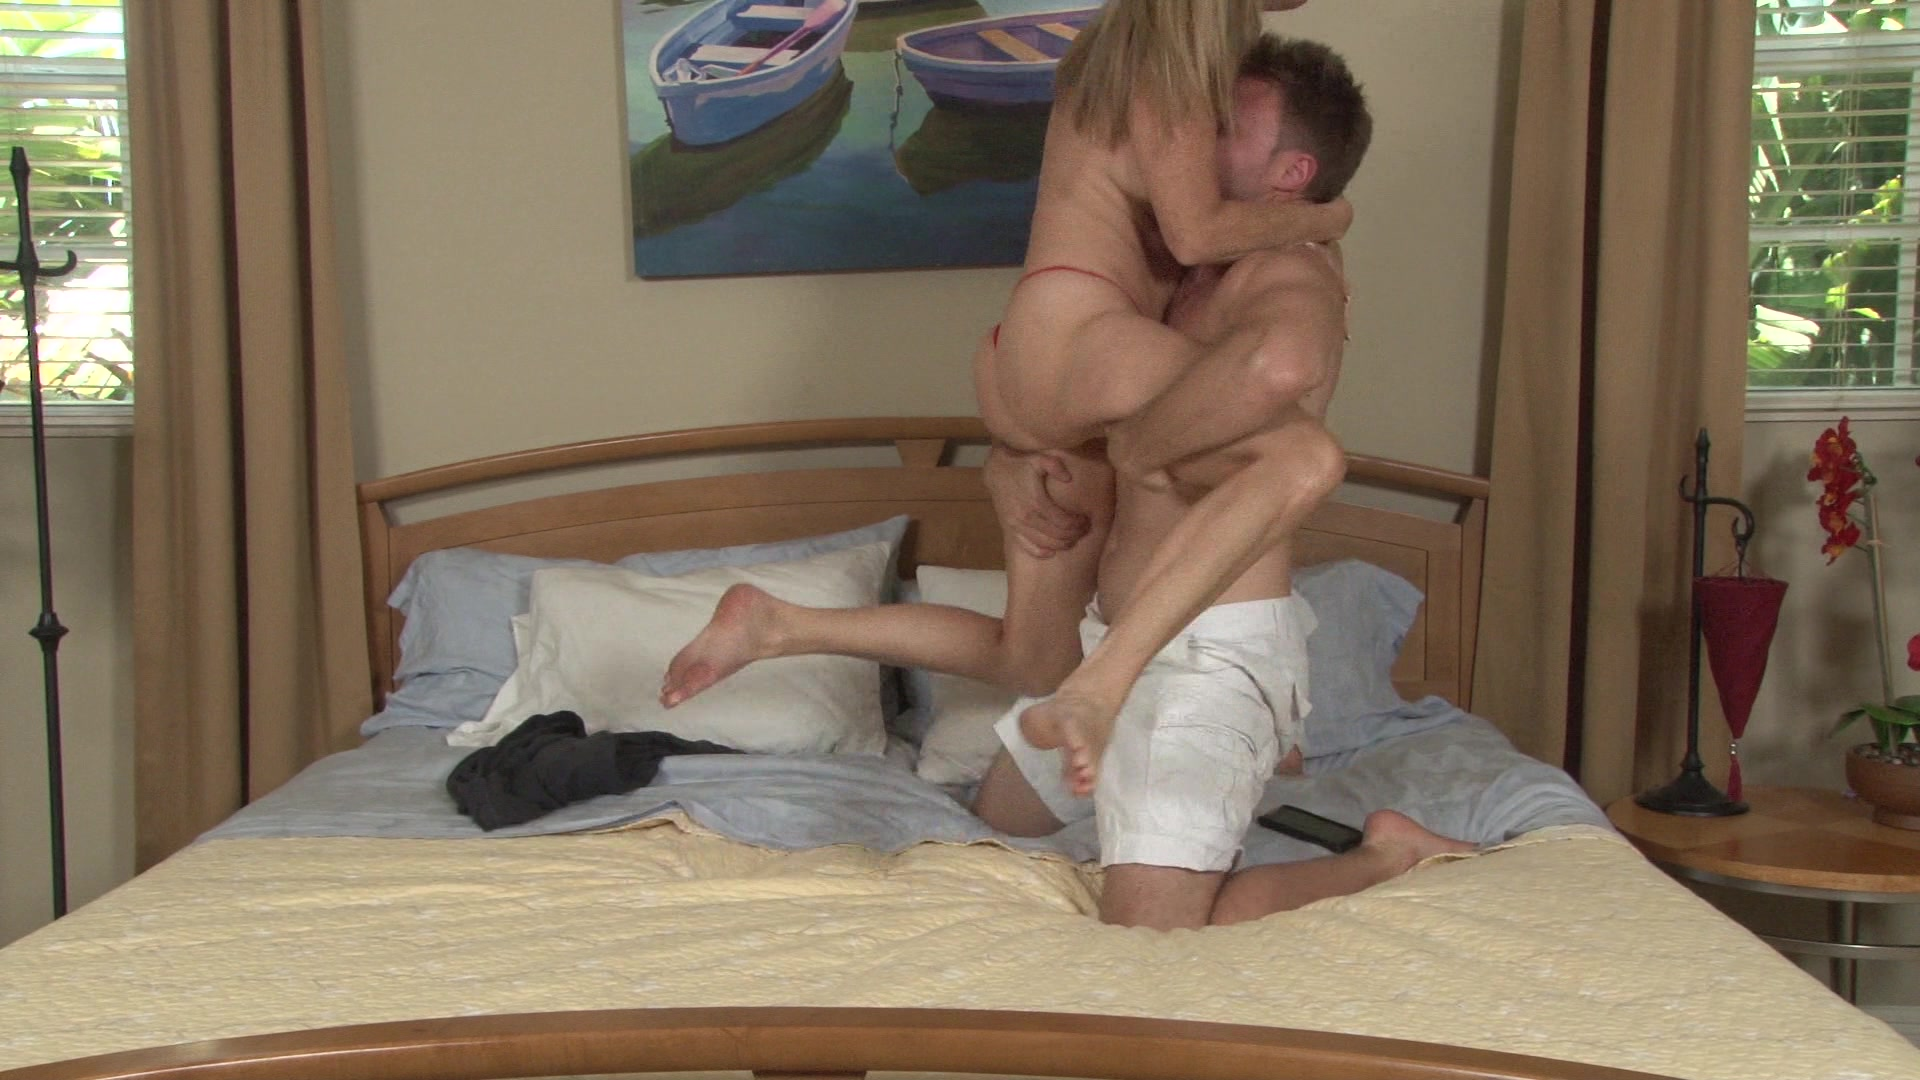 jodi west and levi cash